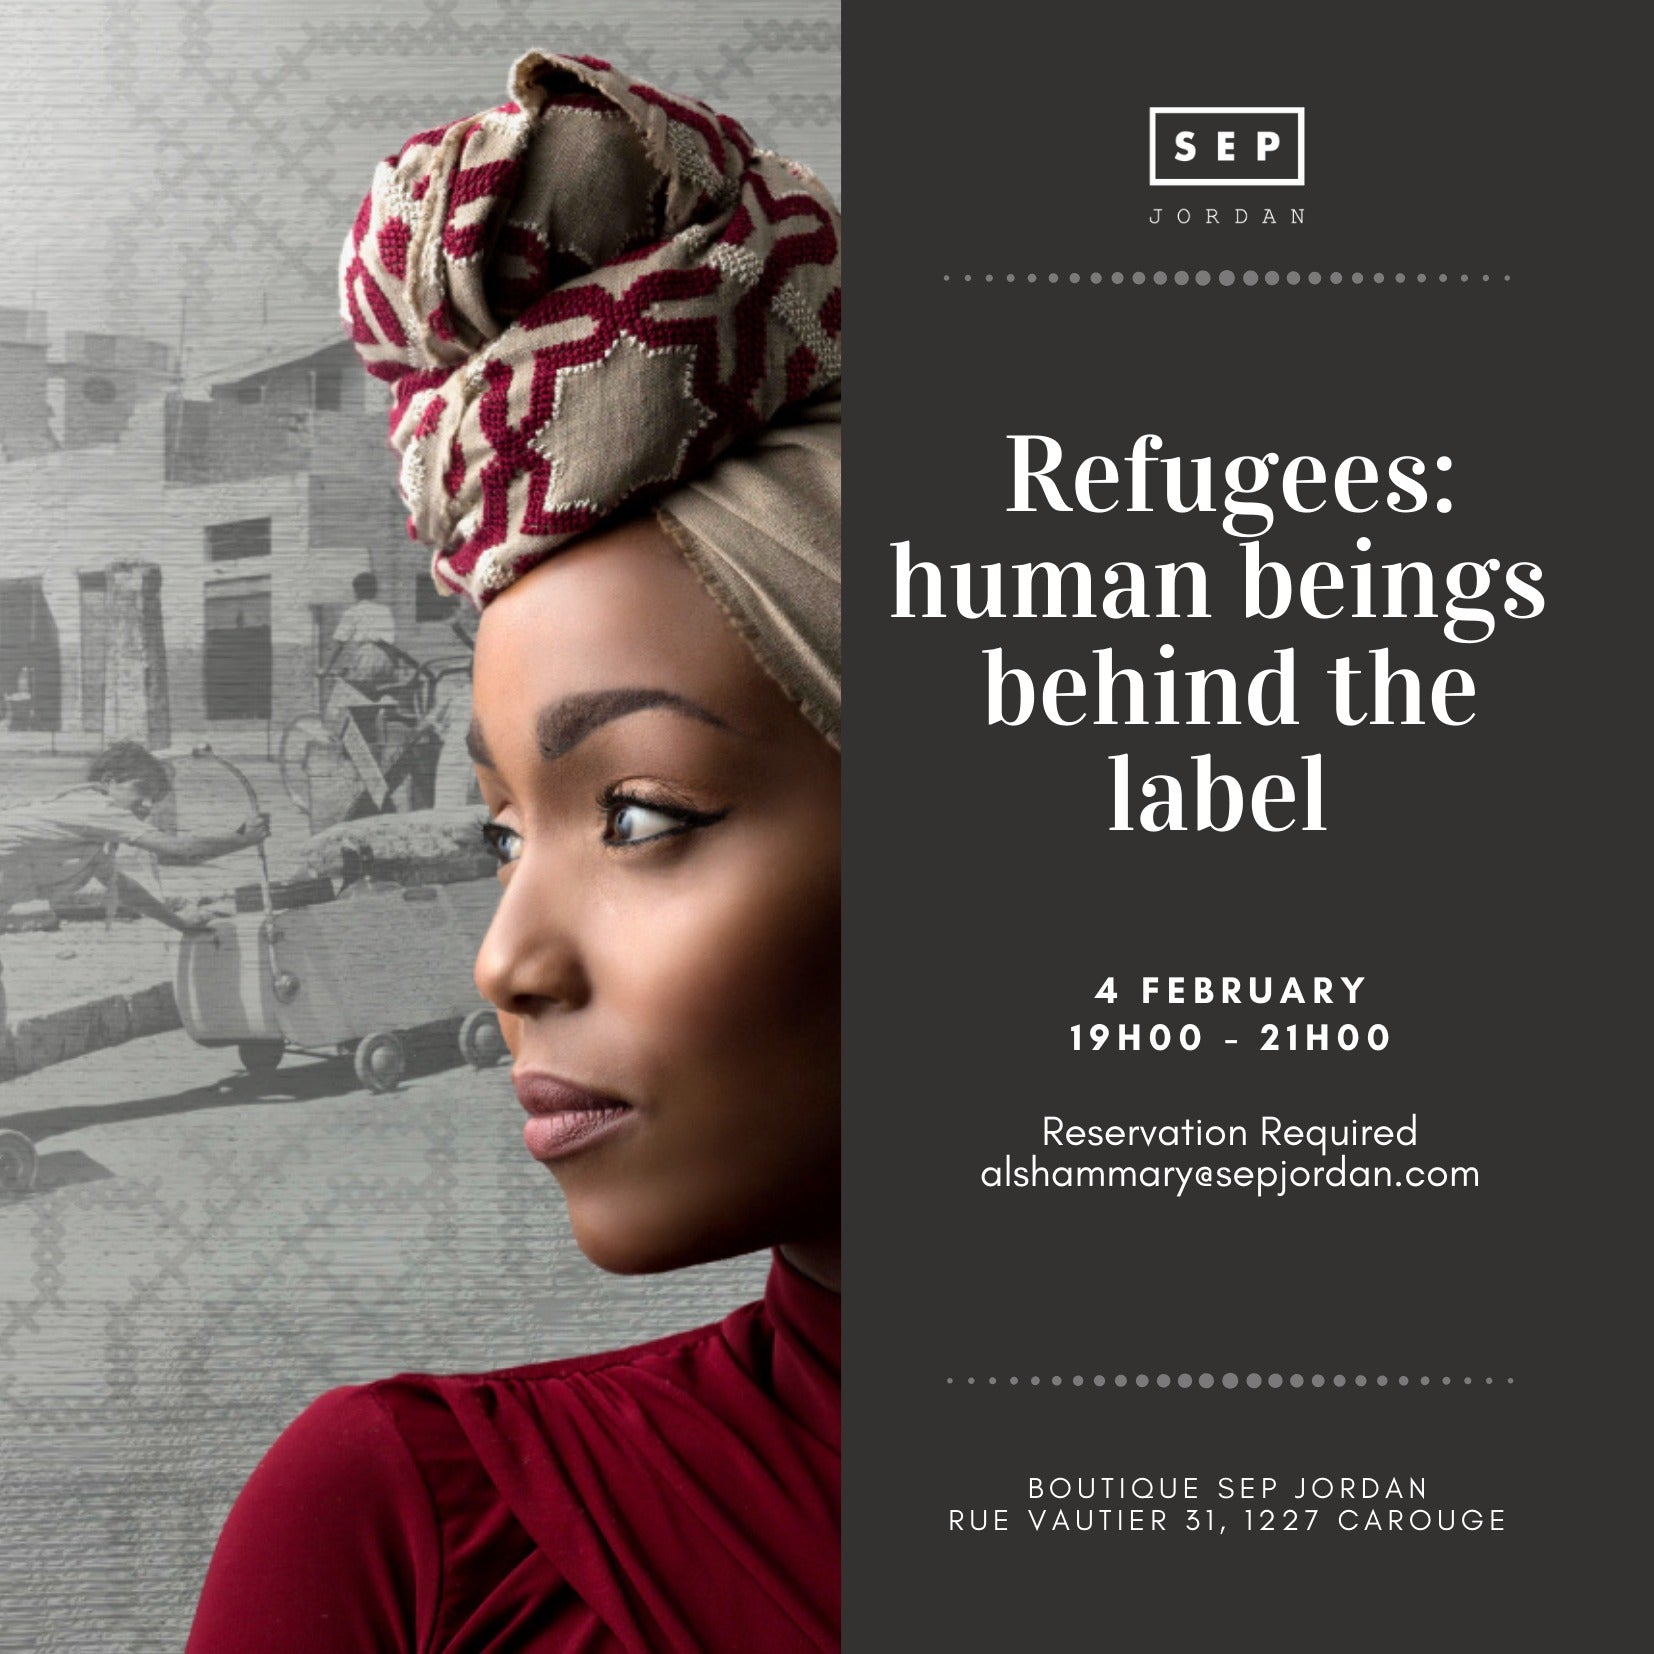 REFUGEES: HUMAN BEINGS BEHIND THE LABEL